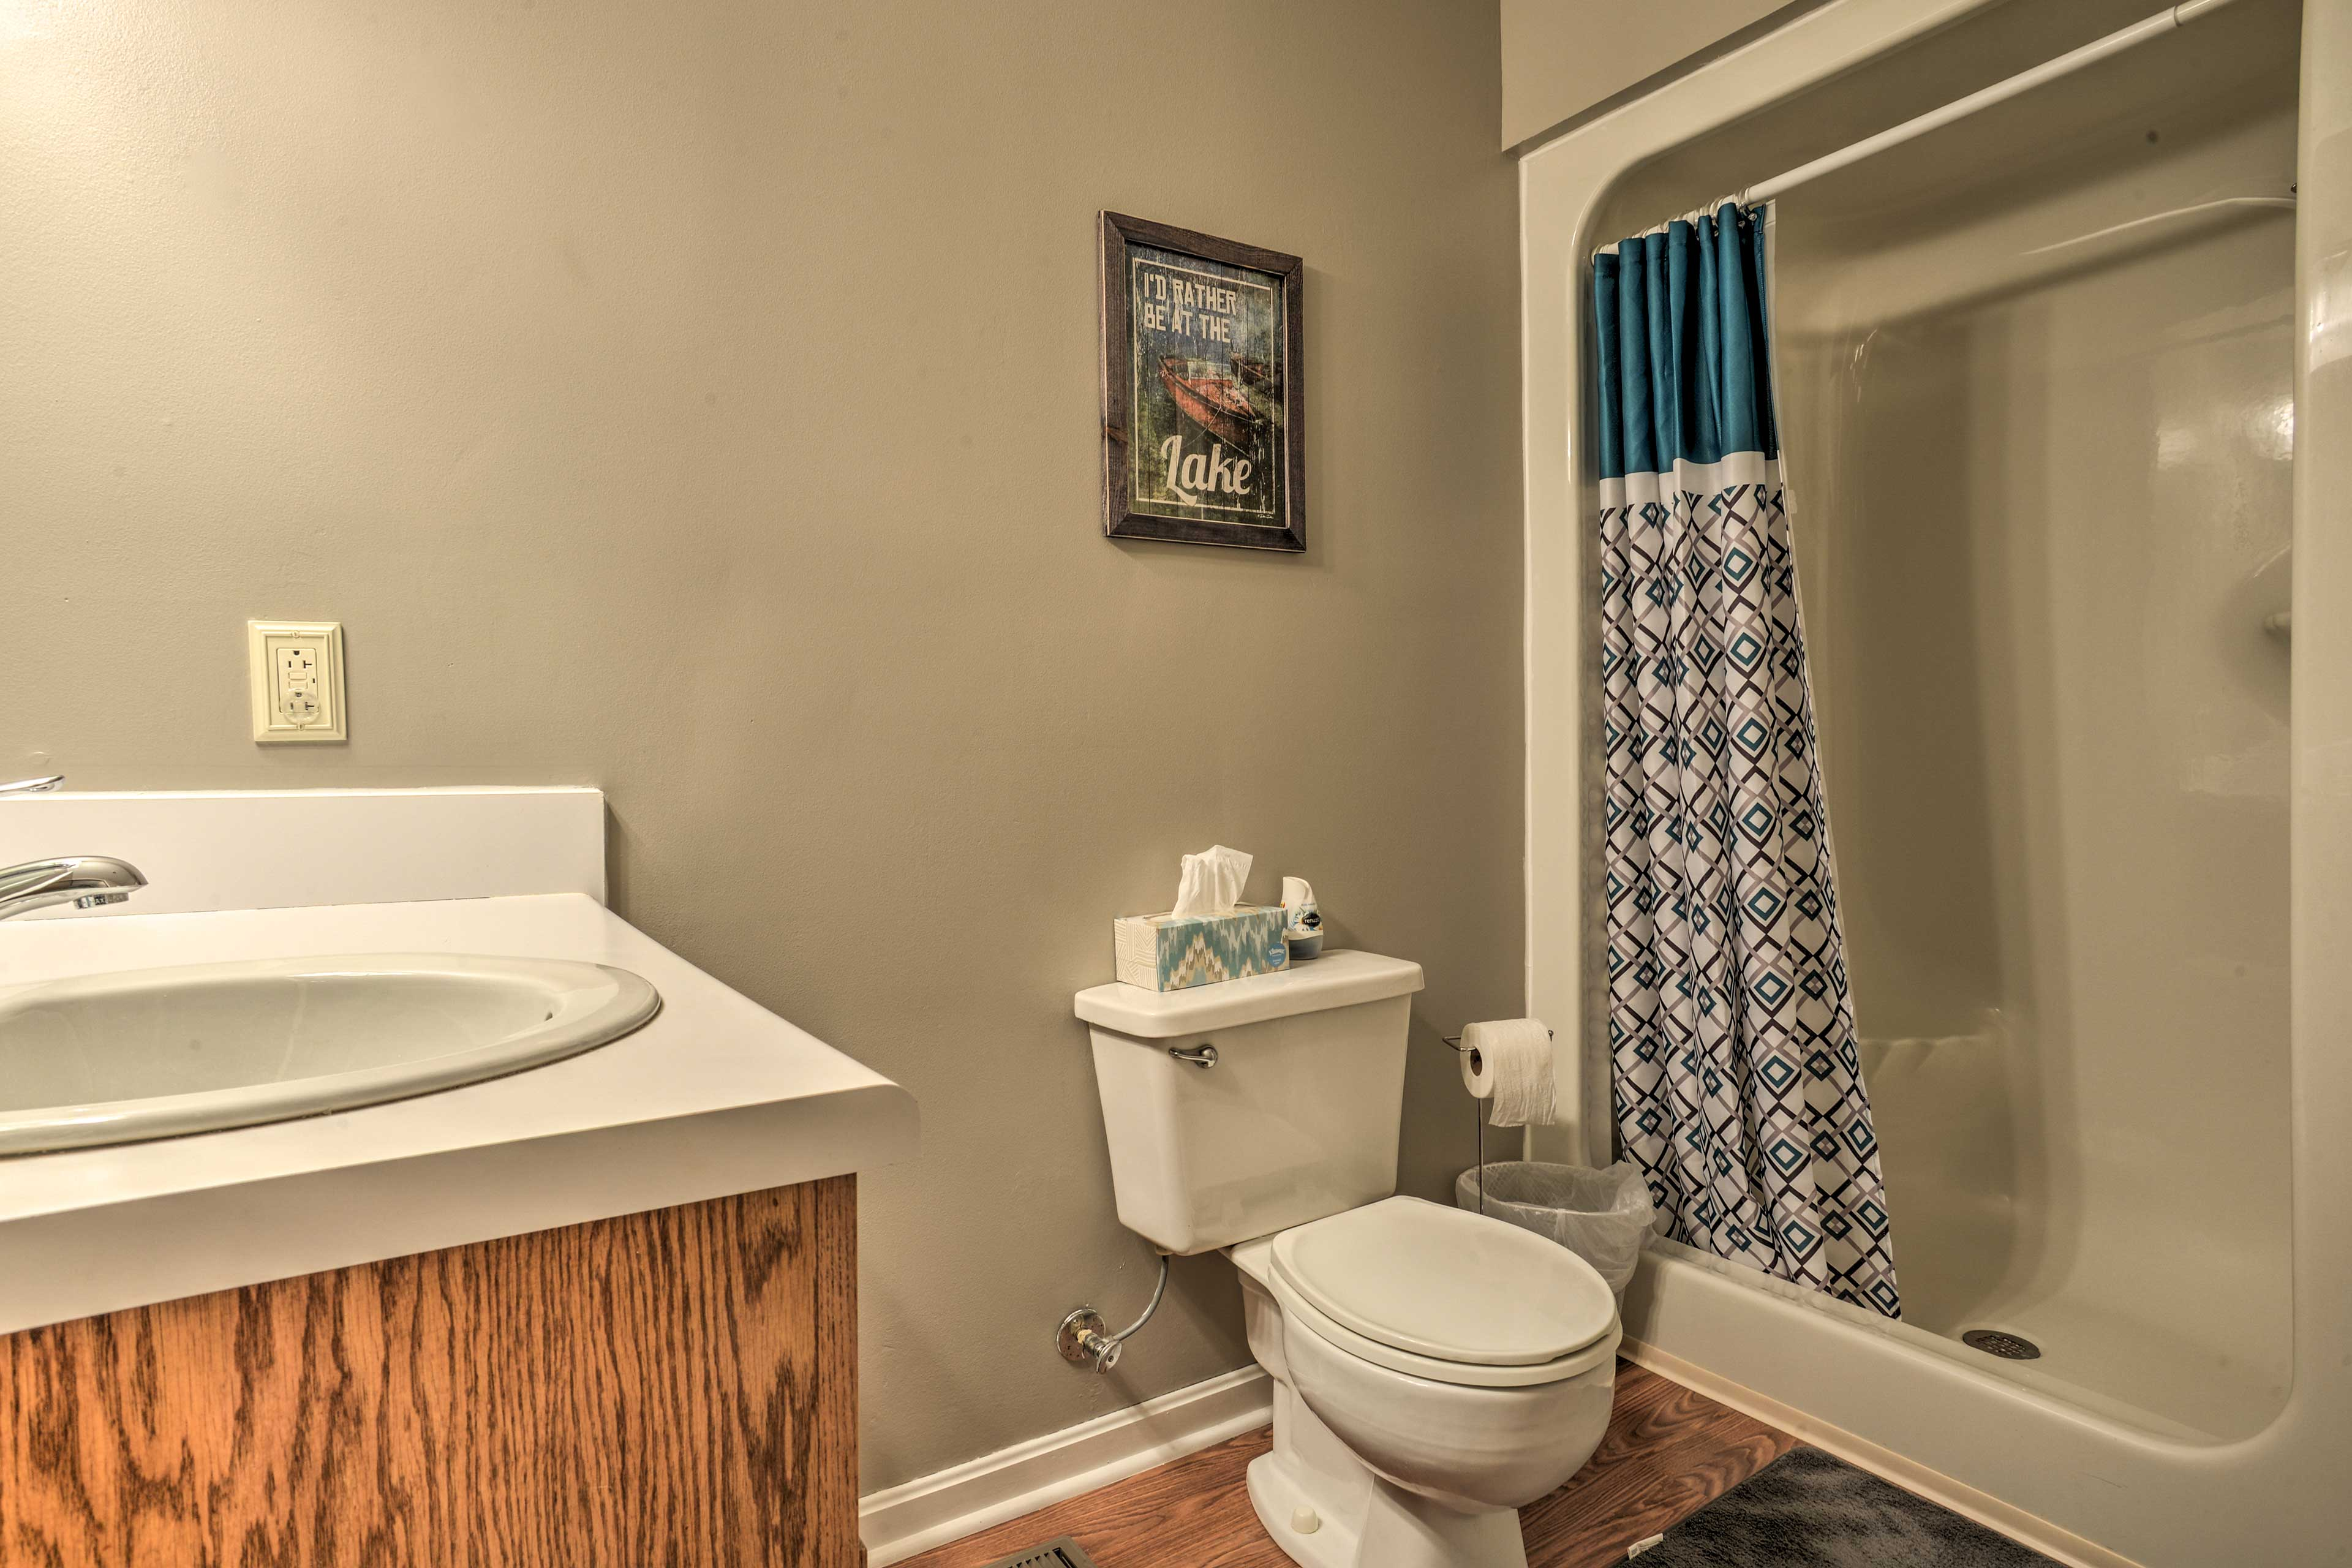 Take a relaxing rinse in the walk-in shower after a day on the lake!